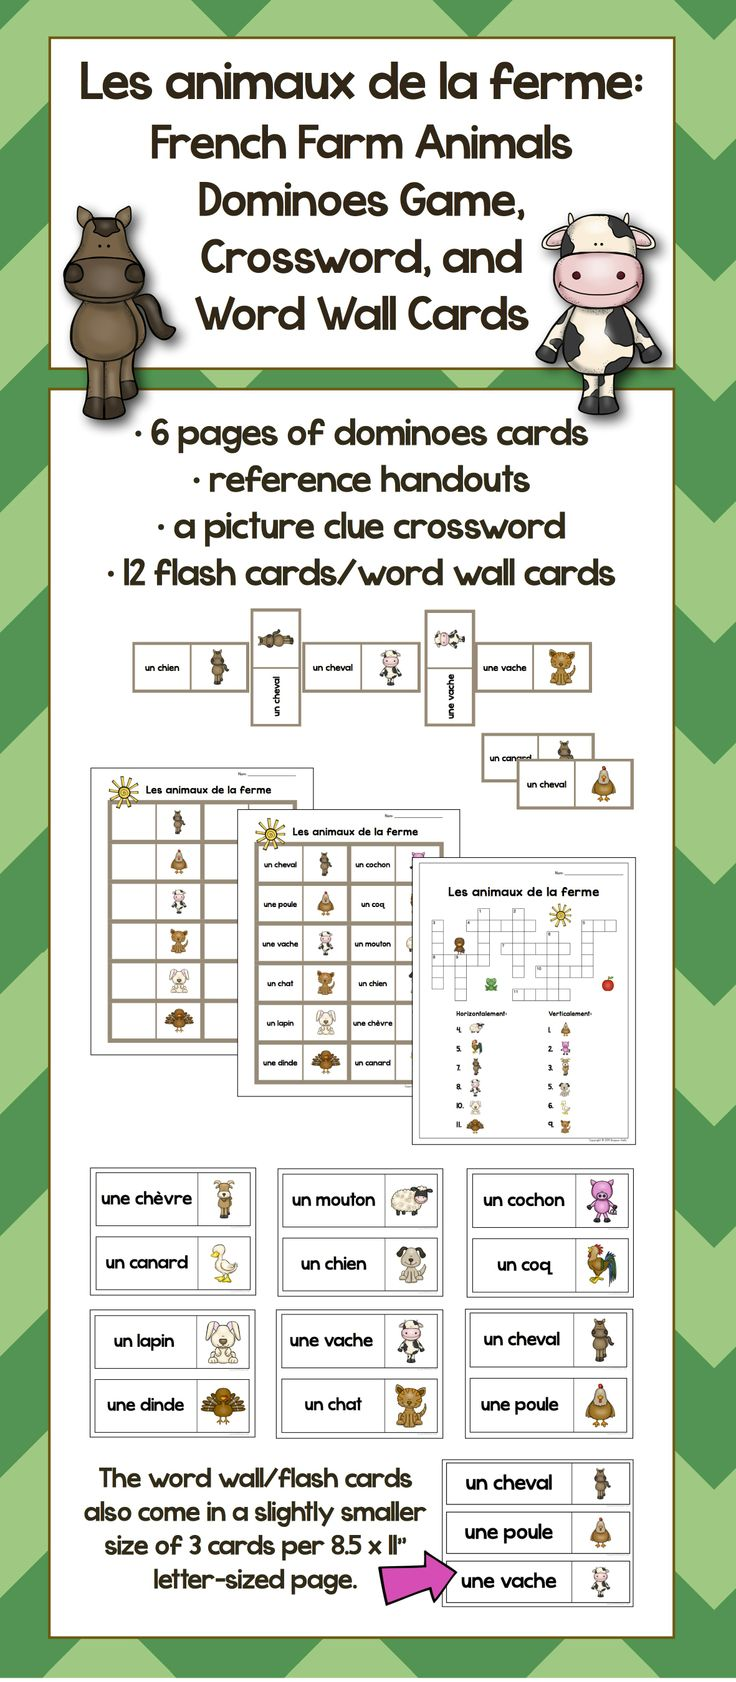 """Les animaux de la ferme: French farm animals dominoes game, crossword, and word wall cards (The words wall cards come it 2 sizes: 2 per 8.5x11"""" page or 3 per page.)"""